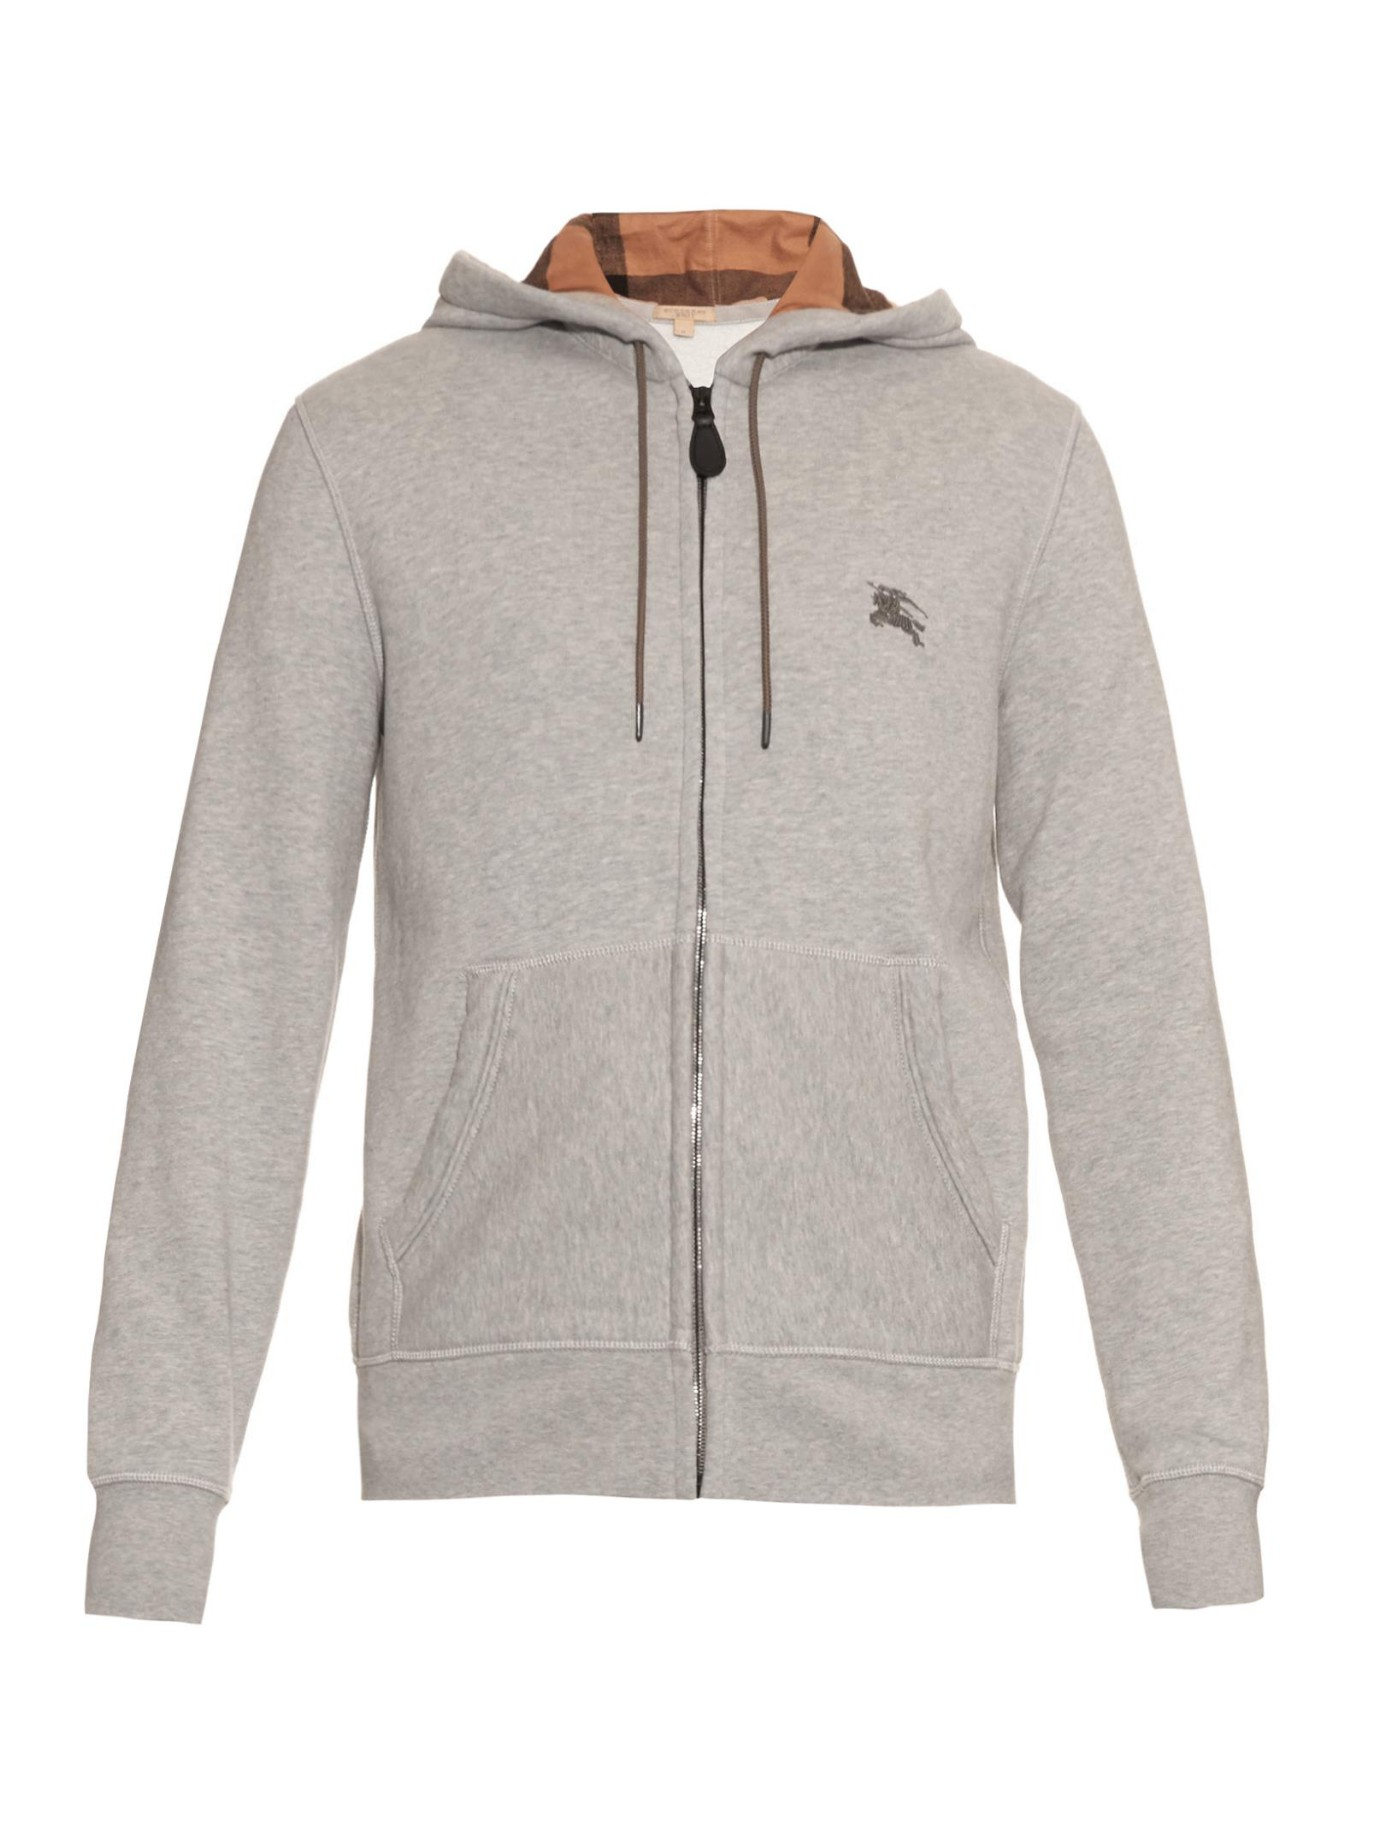 74be64f6d31 Lyst - Burberry Brit Pearce Hooded Fleece Sweater in Gray for Men